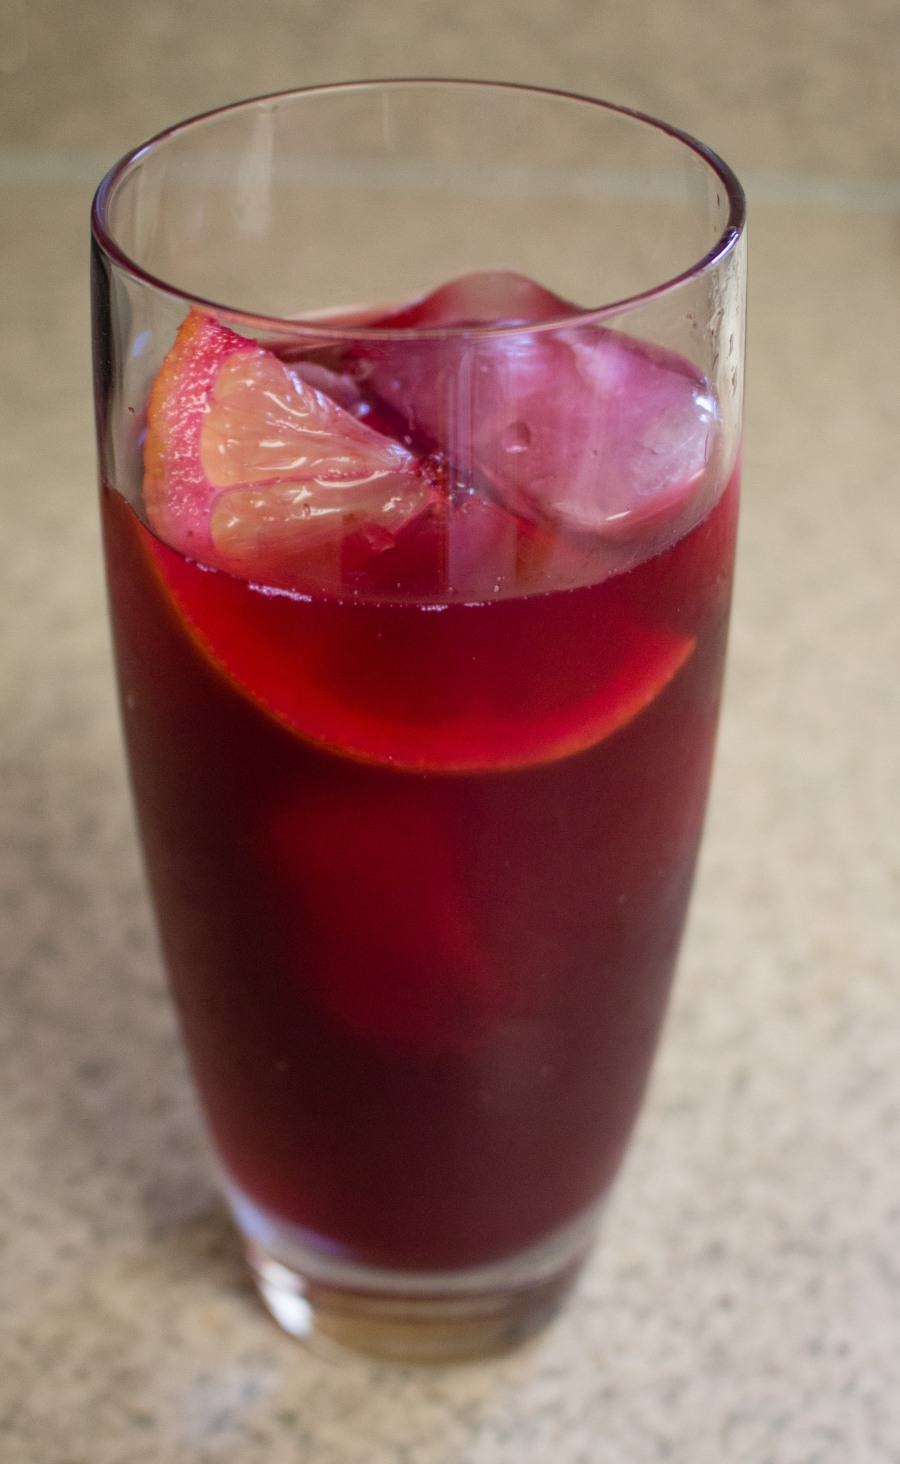 Sparkling Blueberry Lemonade is sweet, tart & fruity! Easy to make an sippably delicious on hot summer days.